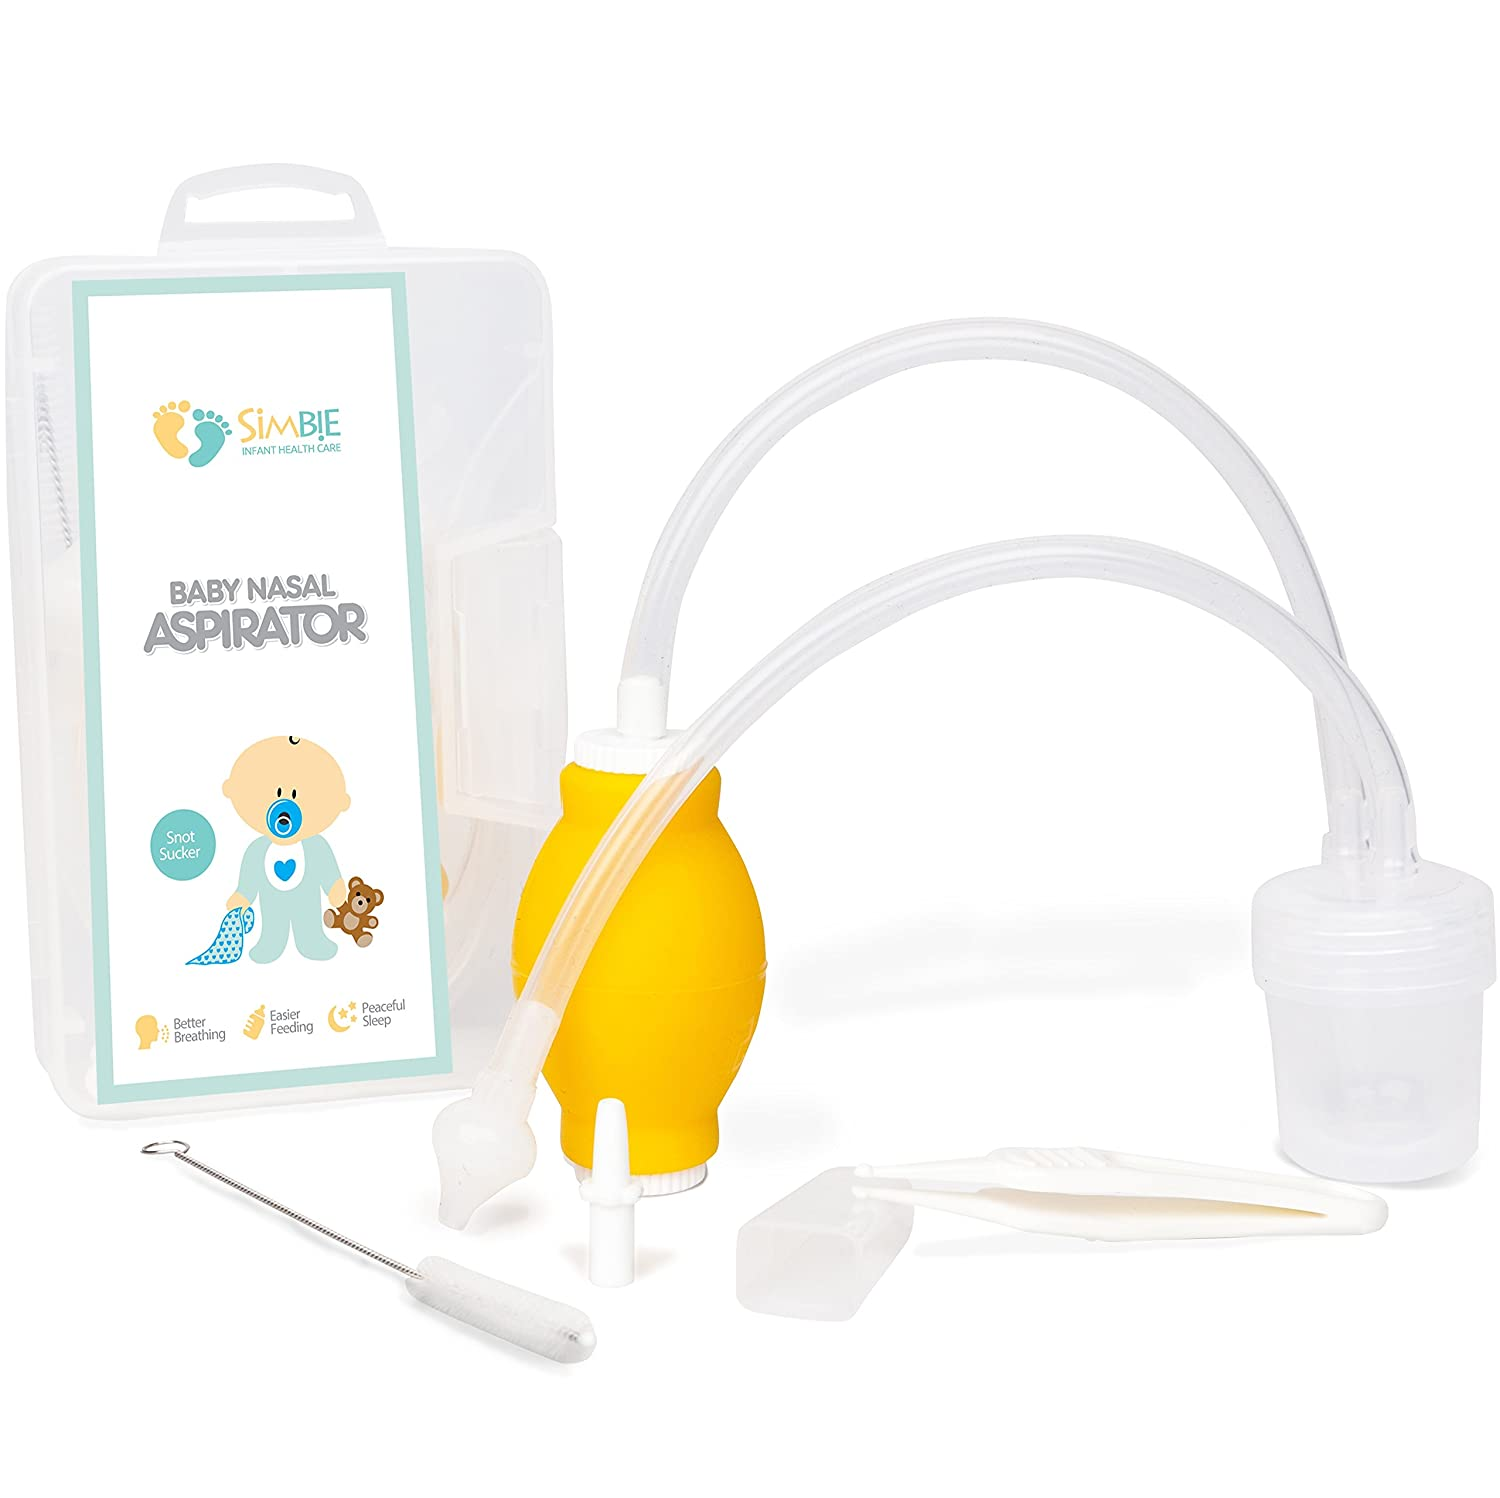 Essential Baby Nose Cleaning Kit - Noncontiguous Nasal Aspirator for Moms- Safe & Gentle Snot Sucker – for Deep Sleep and Clear Breathing from Cold & Flu- With Reusable Storage Case & Cleaning Brush Simbie HEBE0753